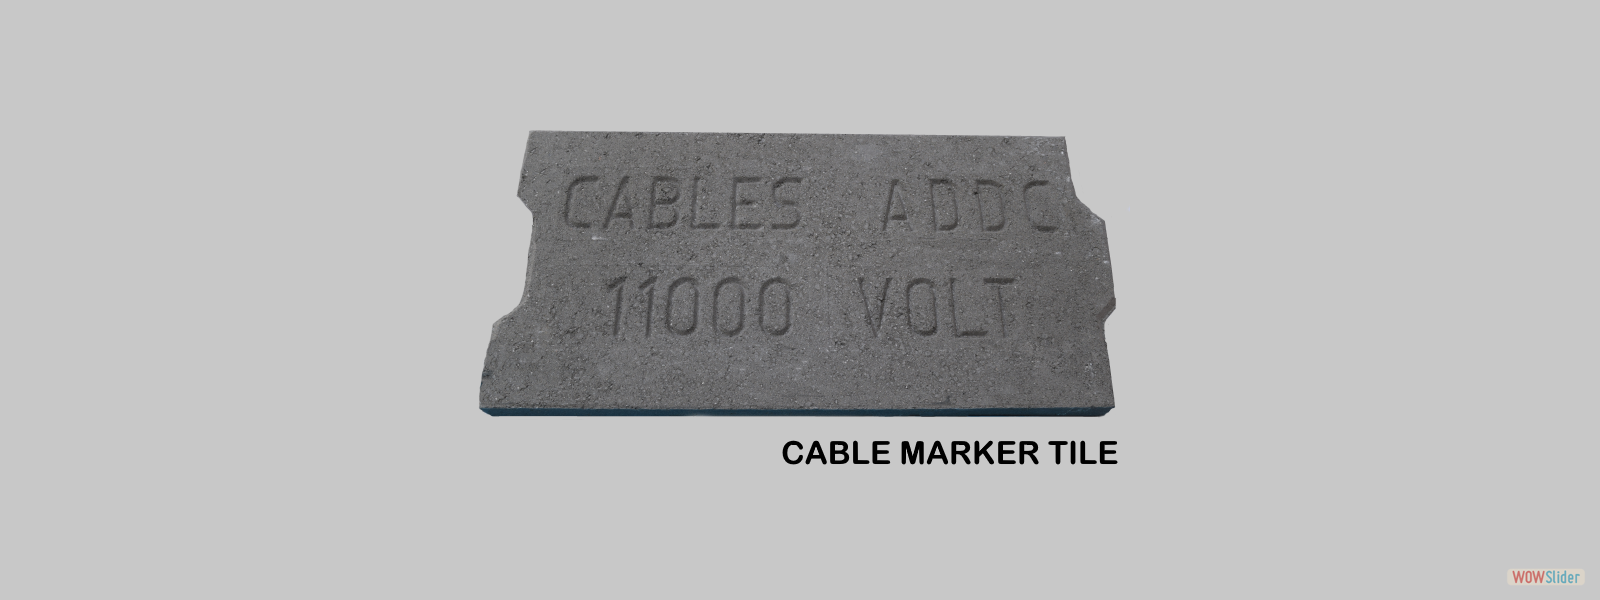 cable marker tile 1